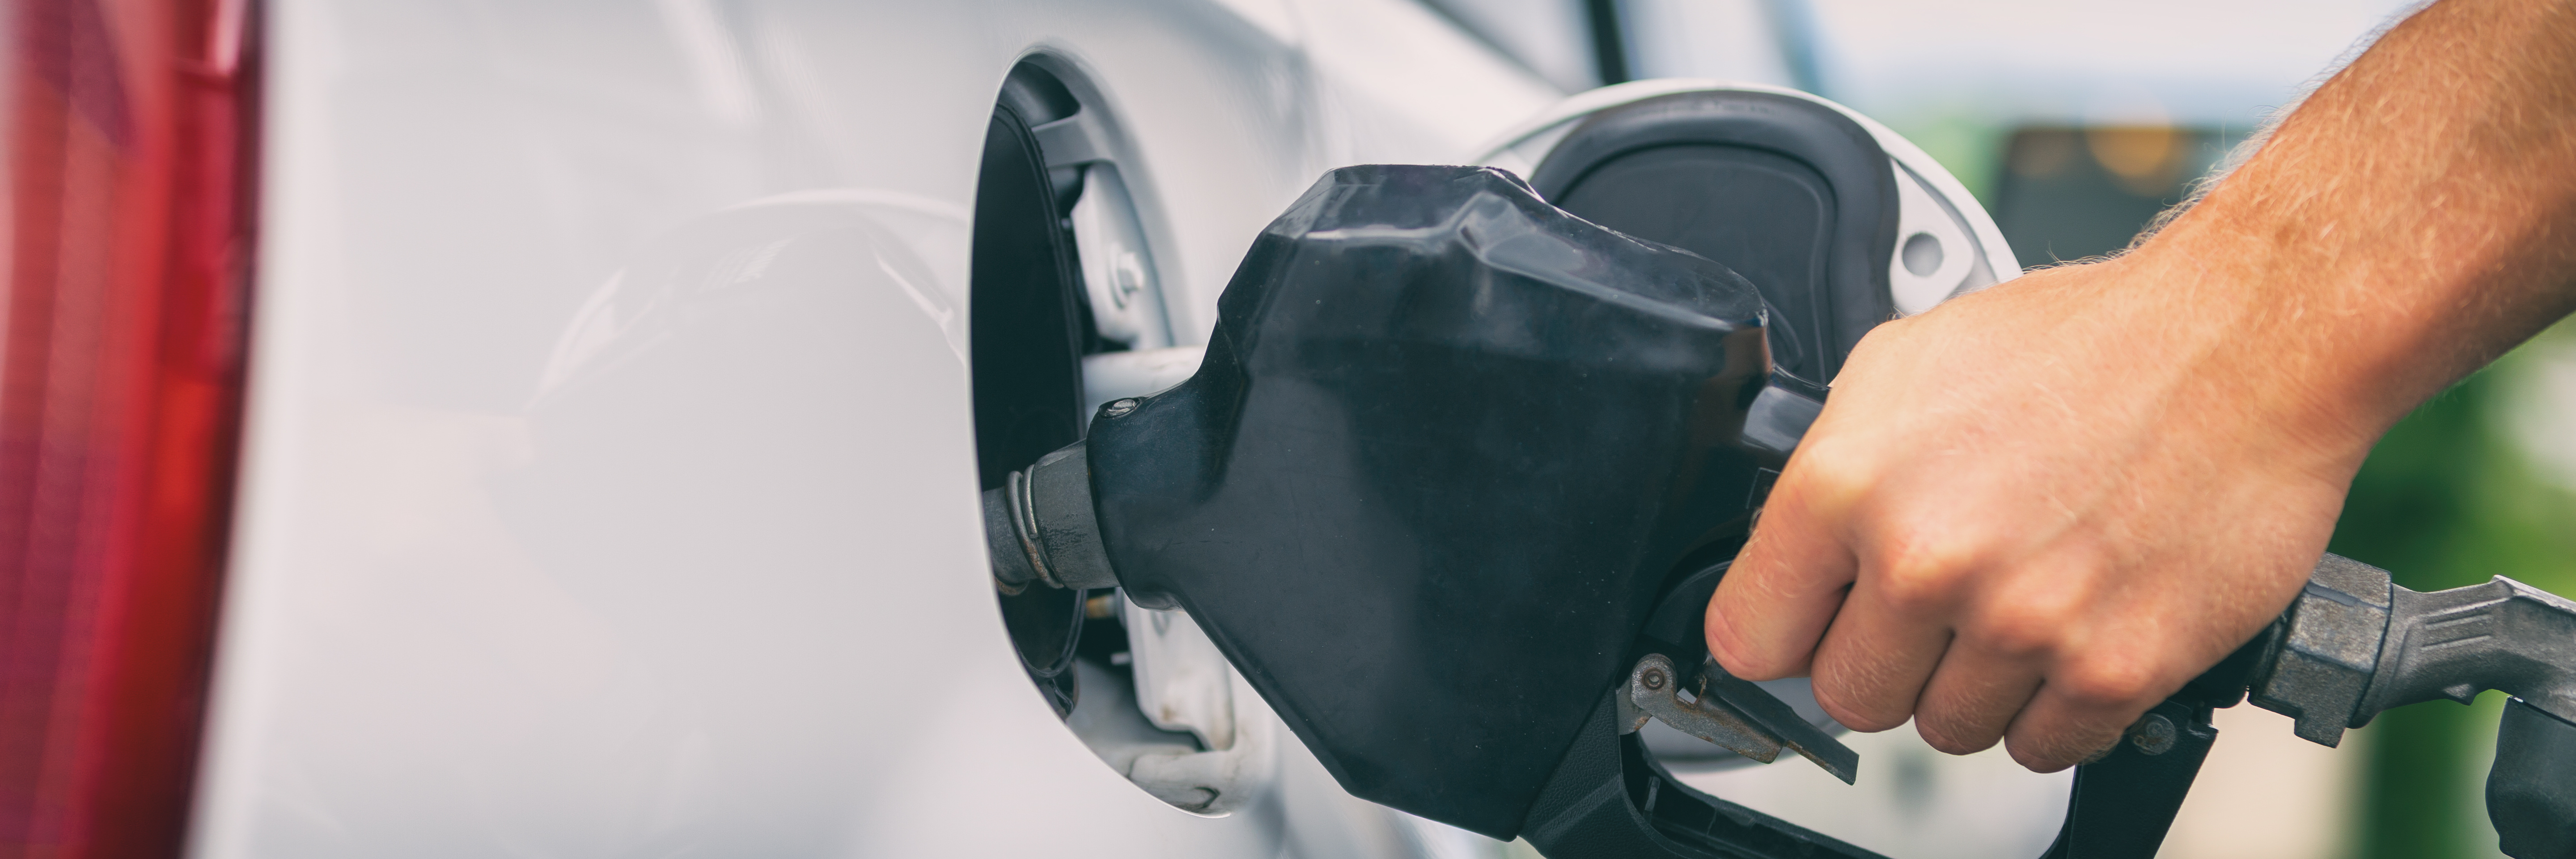 5 simple ways to reduce fuel costs